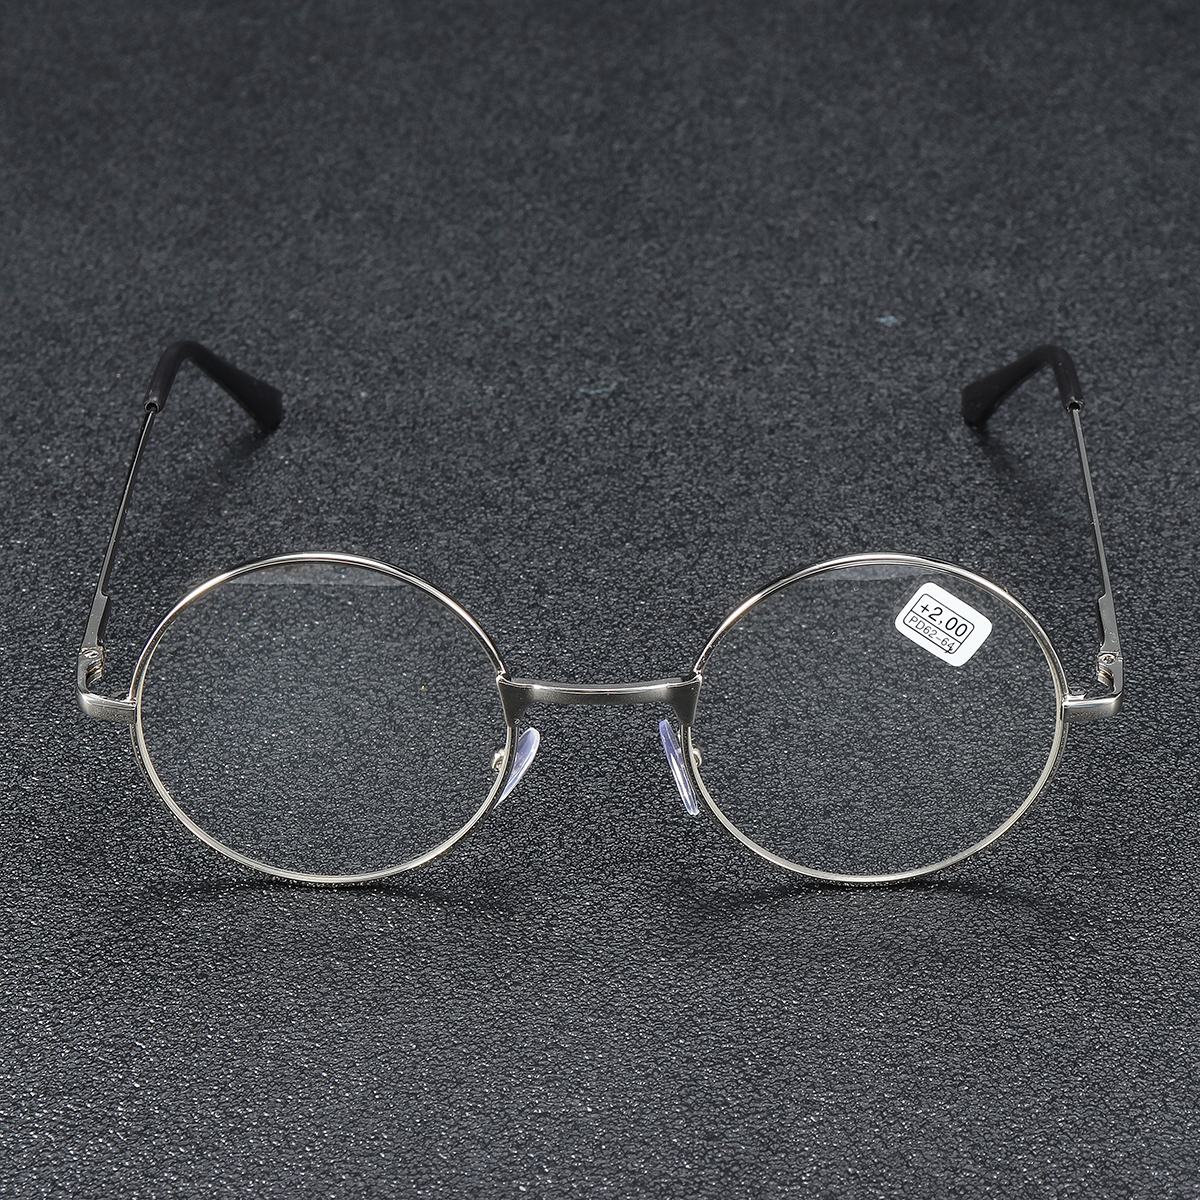 Minleaf Round Metal Frame Presbyopic Best Reading Glasses